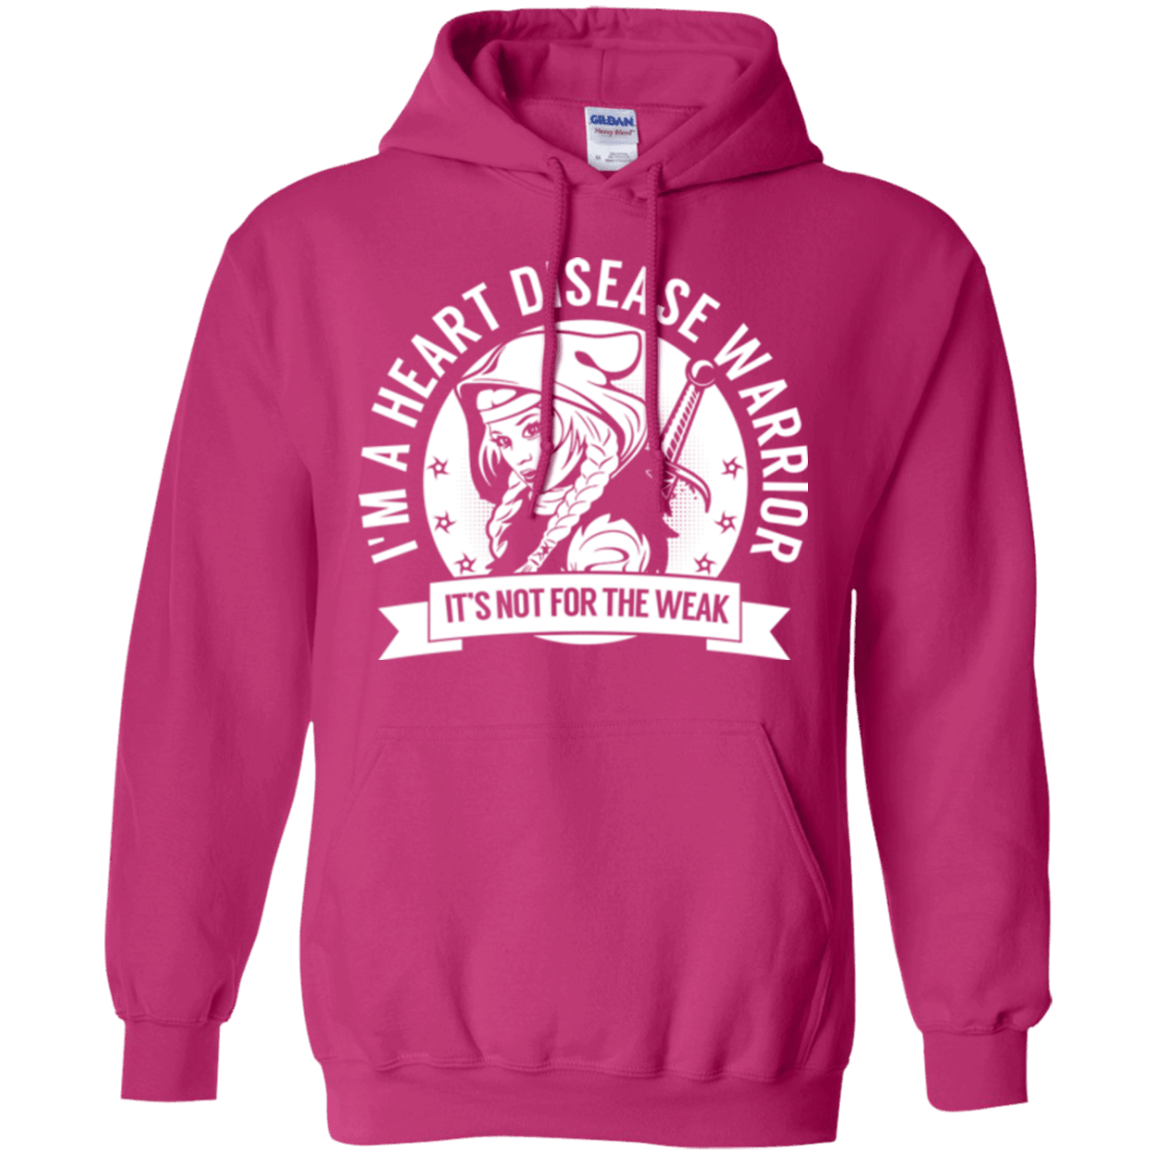 Heart Disease Warrior Hooded Pullover Hoodie 8 oz. - The Unchargeables